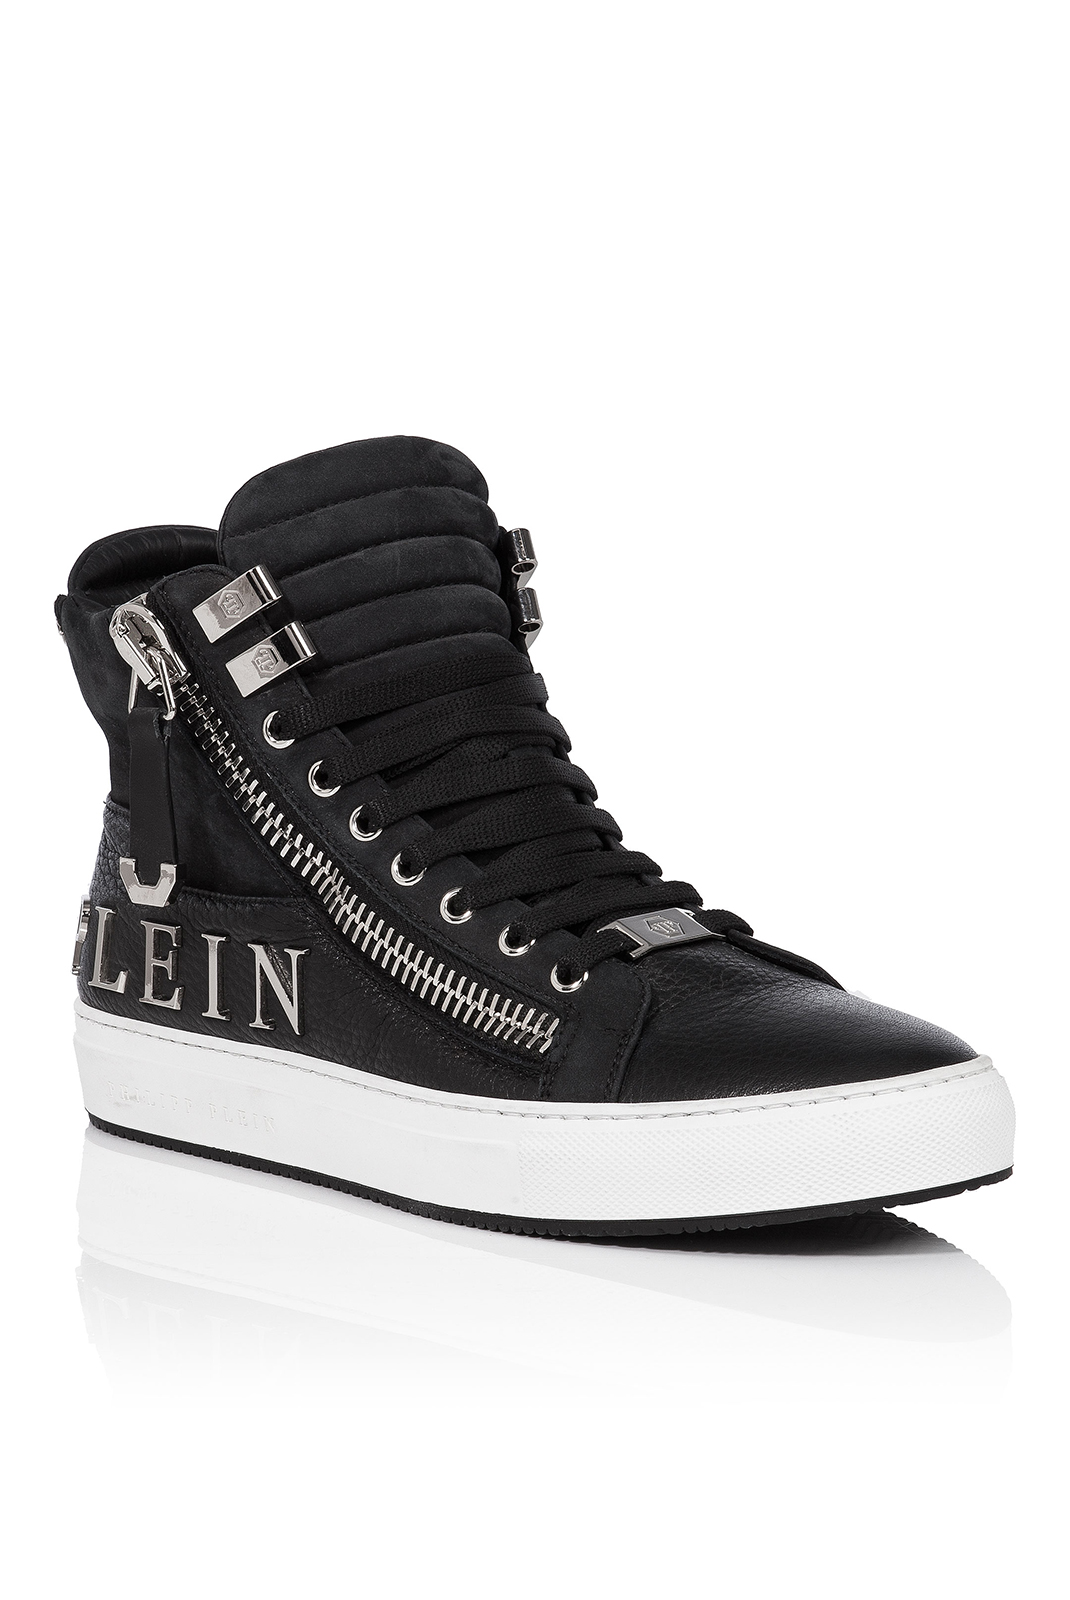 Baskets / Sport  Philipp plein MSC0394 HOME BLACK/NICKEL